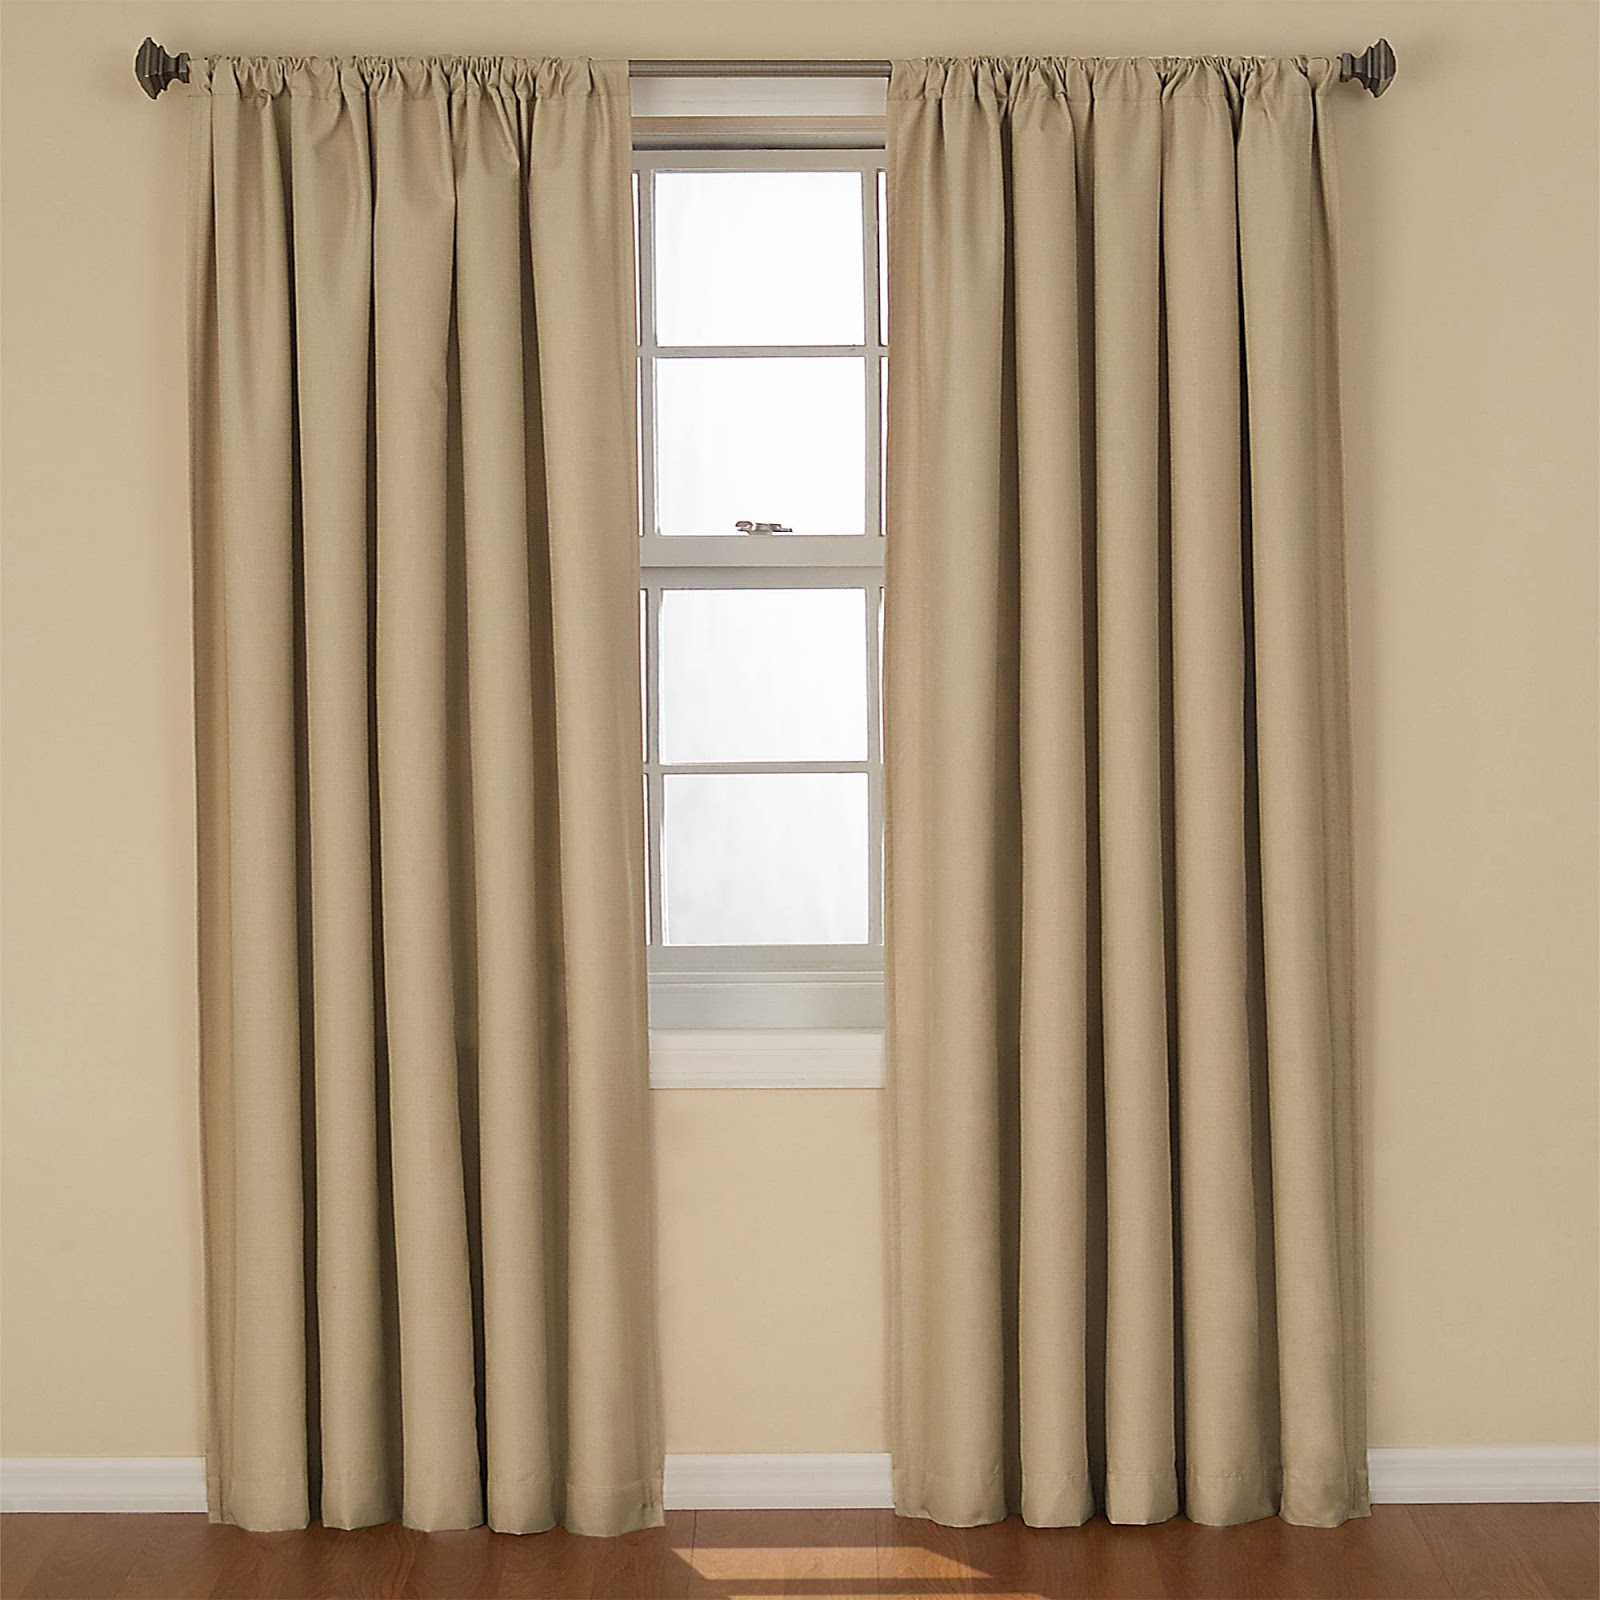 Drawstring Curtain Rods Curtains Dream Behind The Designs Gallery